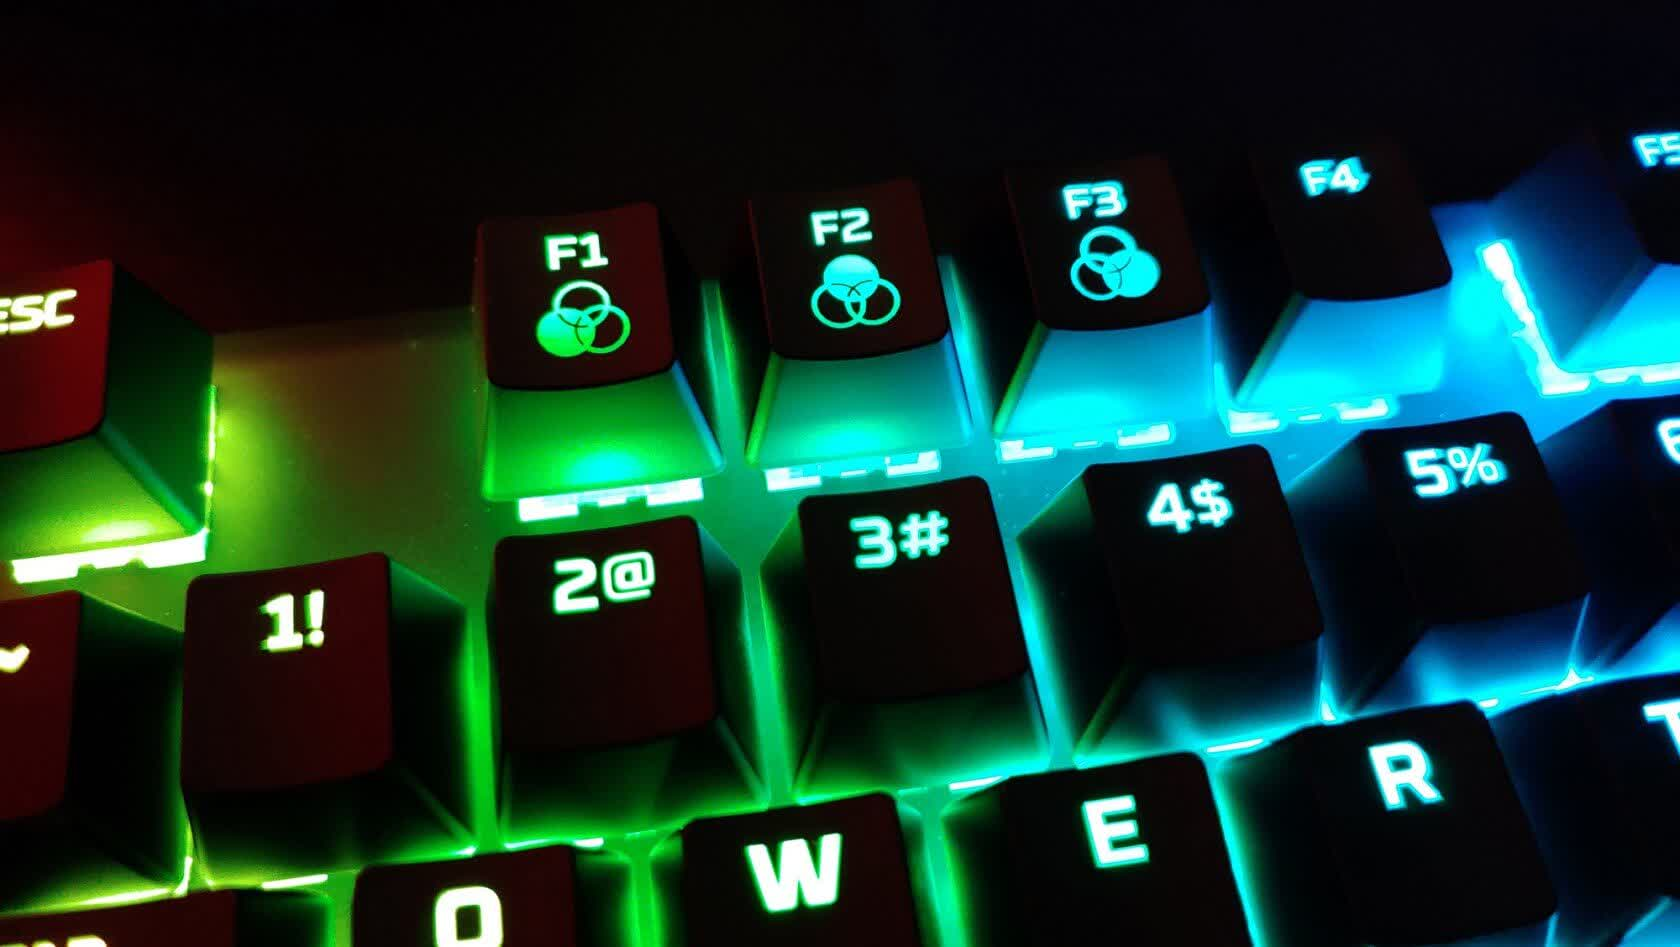 Kingston HyperX Alloy FPS RGB